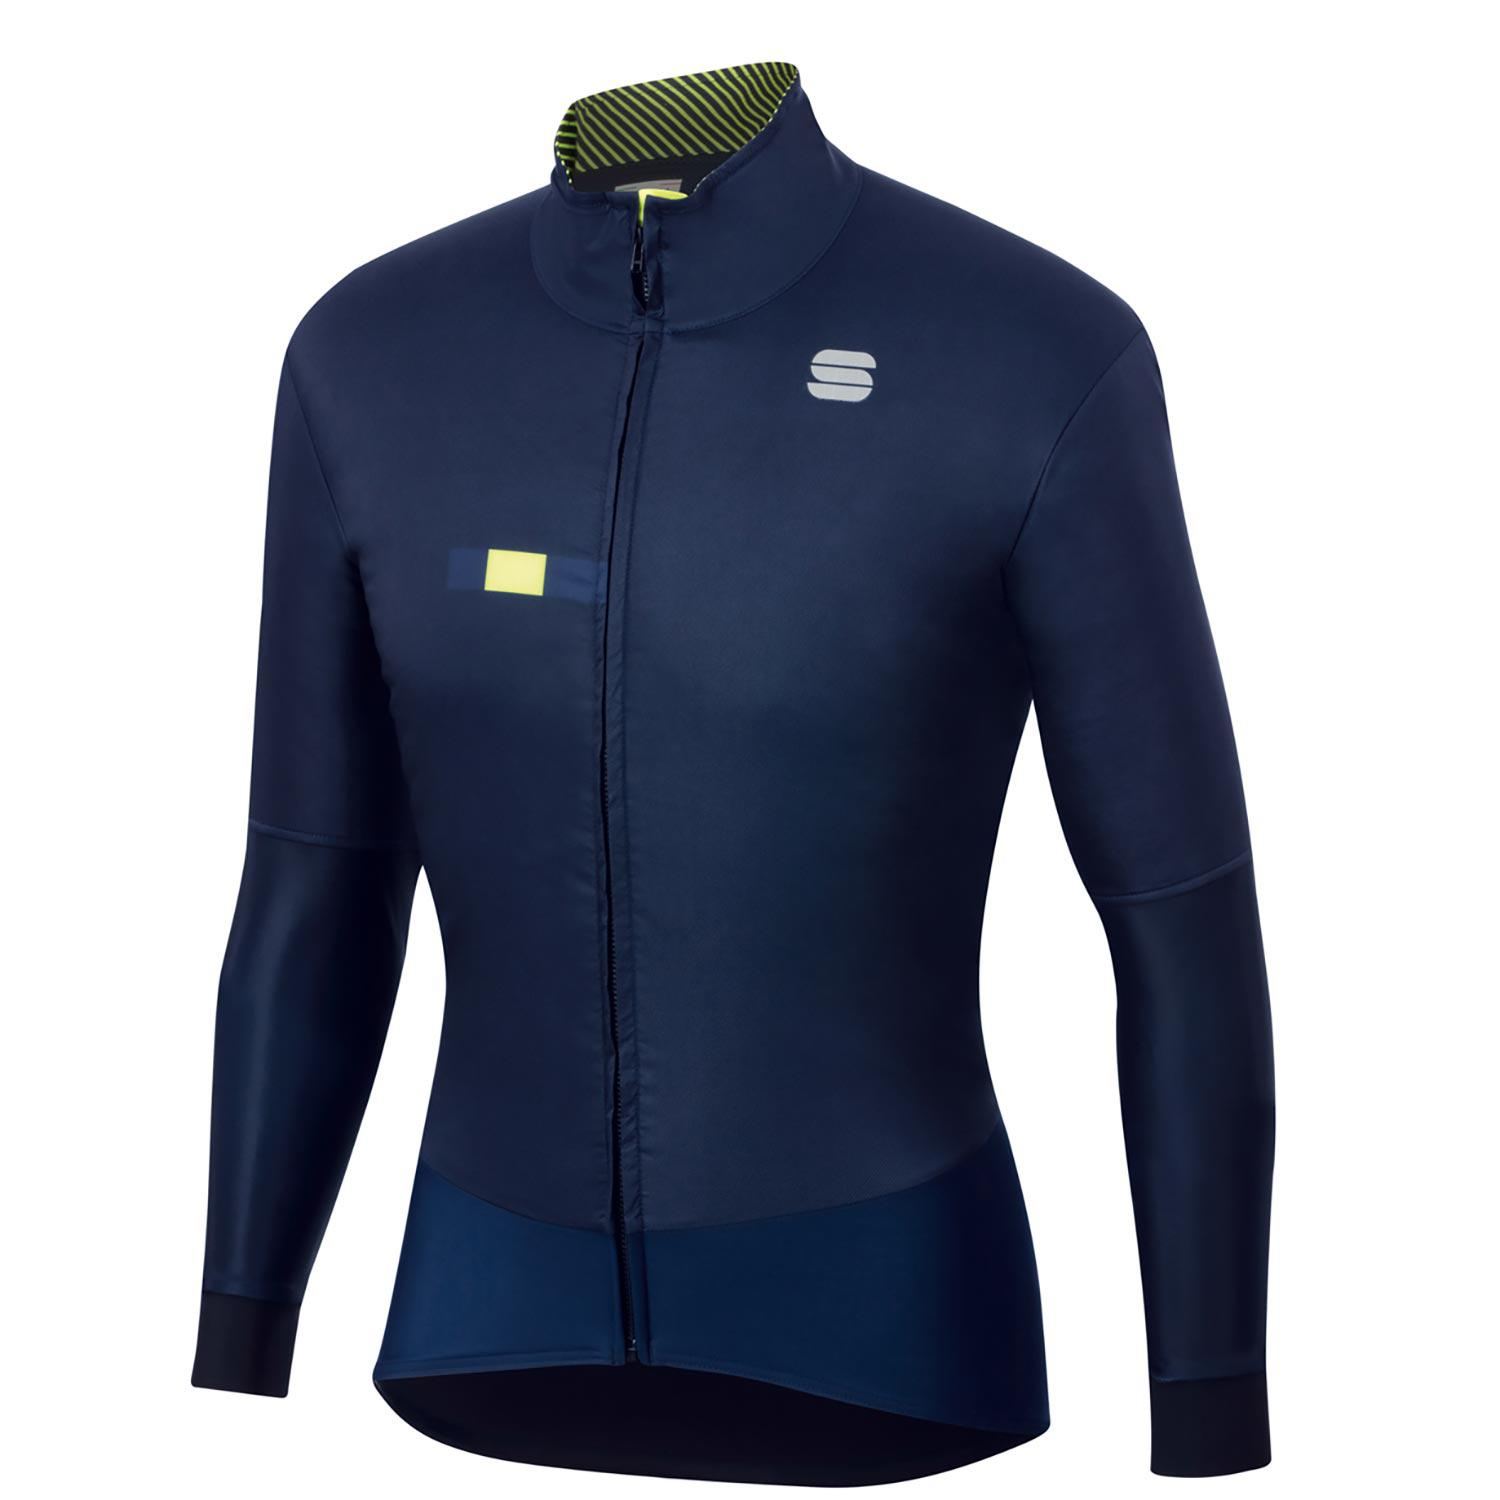 Sportful-Sportful BodyFit Pro Jacket-Blue/Yellow Fluo-S-SF205010132-saddleback-elite-performance-cycling